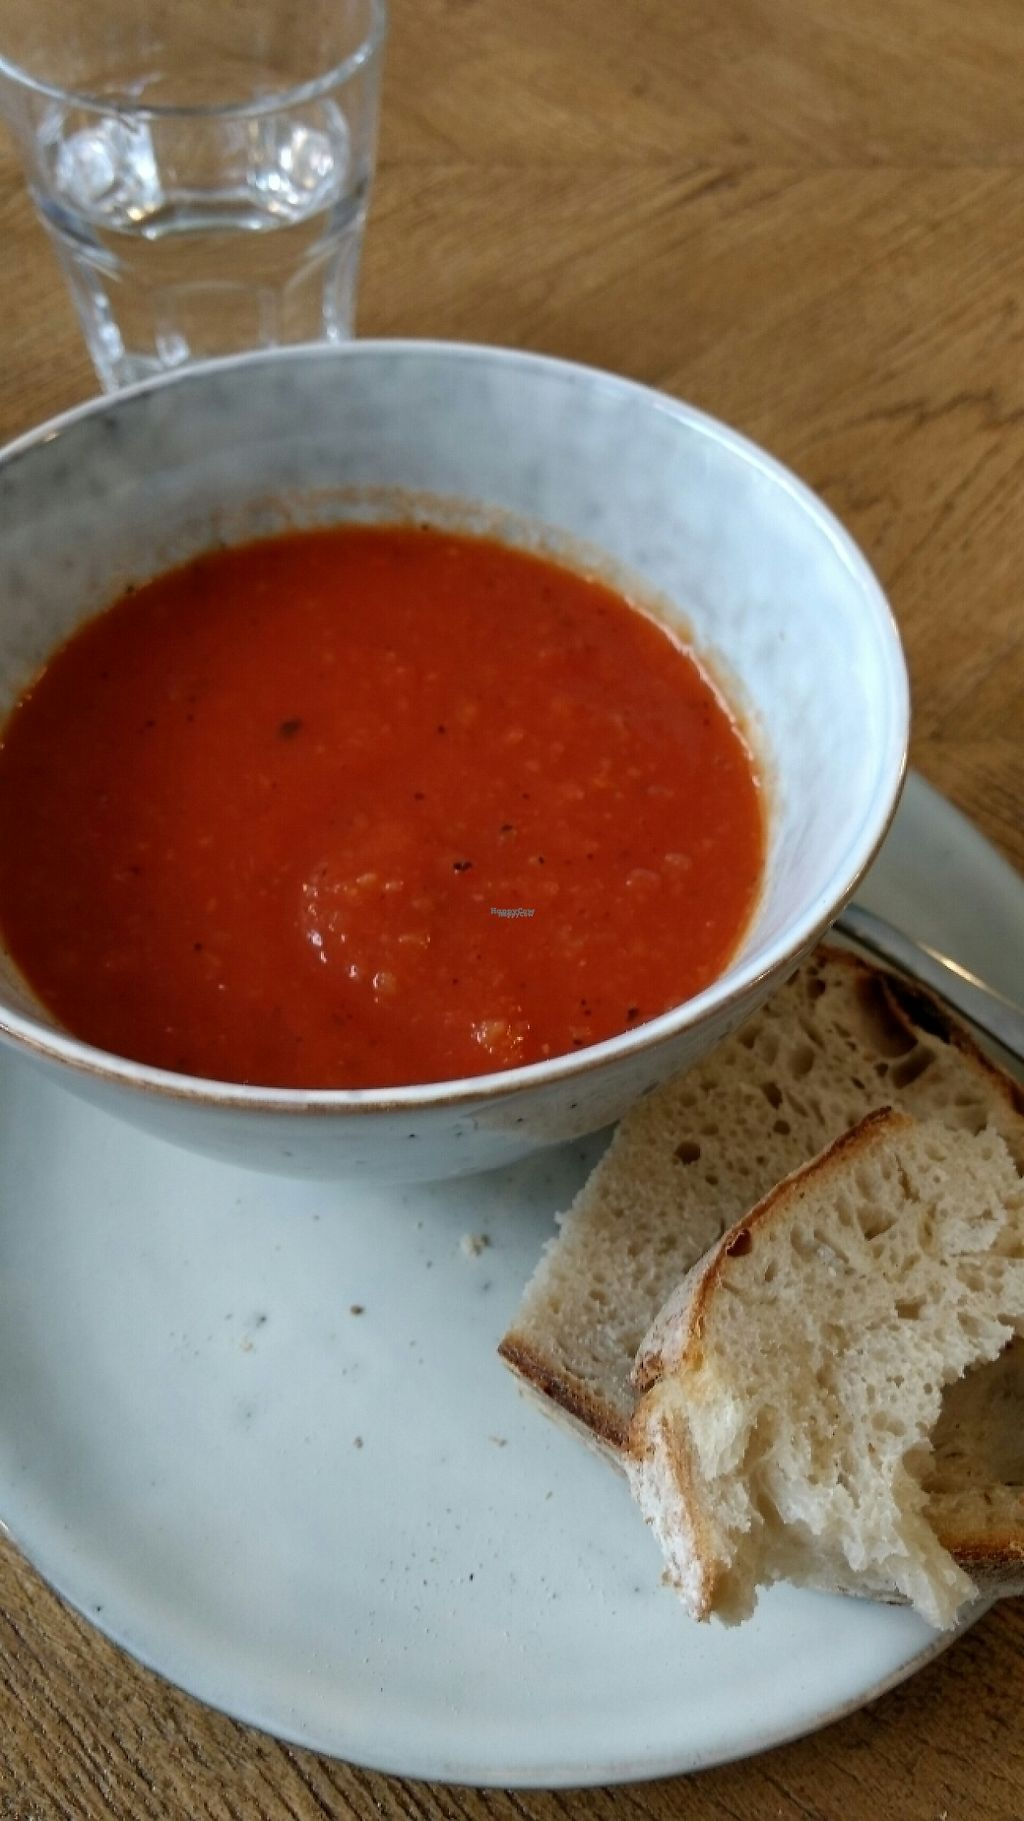 """Photo of Brochan  by <a href=""""/members/profile/craigmc"""">craigmc</a> <br/>tomato, red pepper and harissa <br/> March 10, 2017  - <a href='/contact/abuse/image/86136/234866'>Report</a>"""